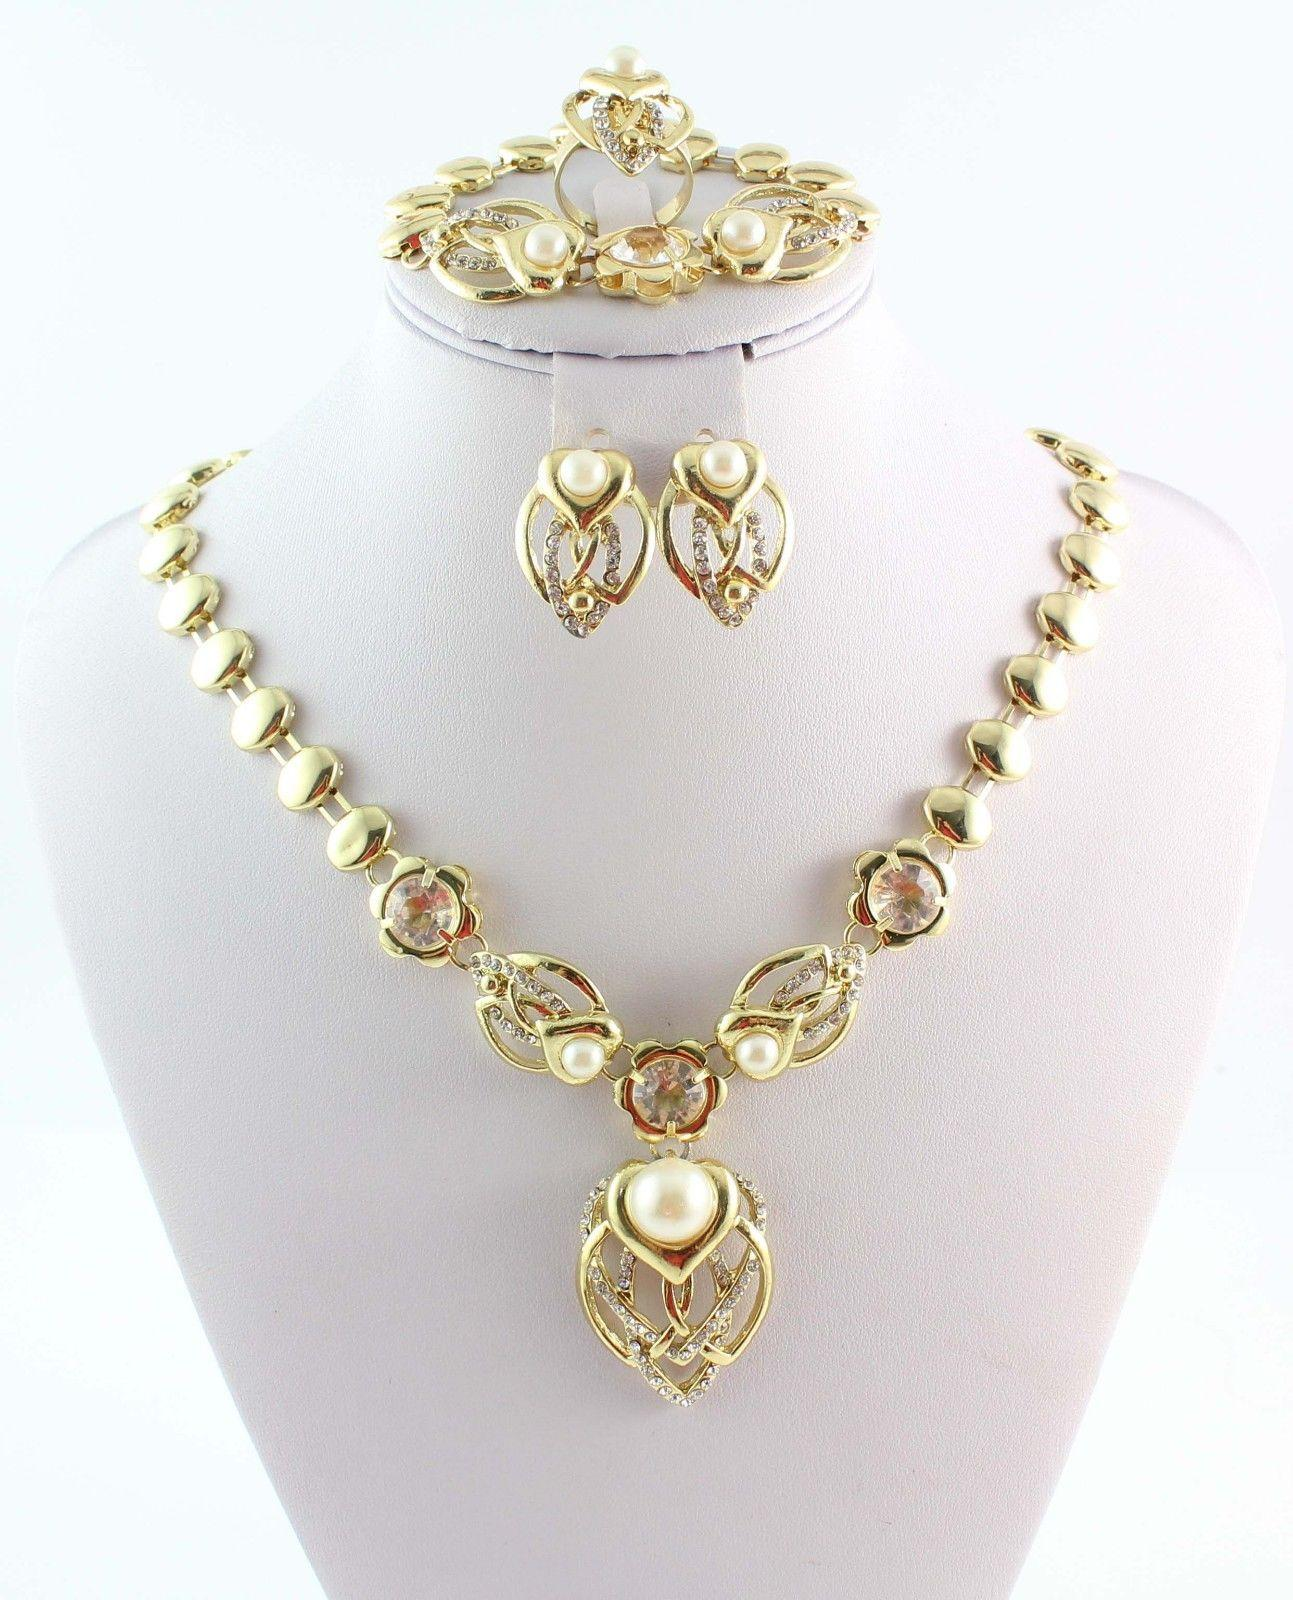 jewellery jewelry inspired necklace costume guide necklaces style vintage blog statement glamour